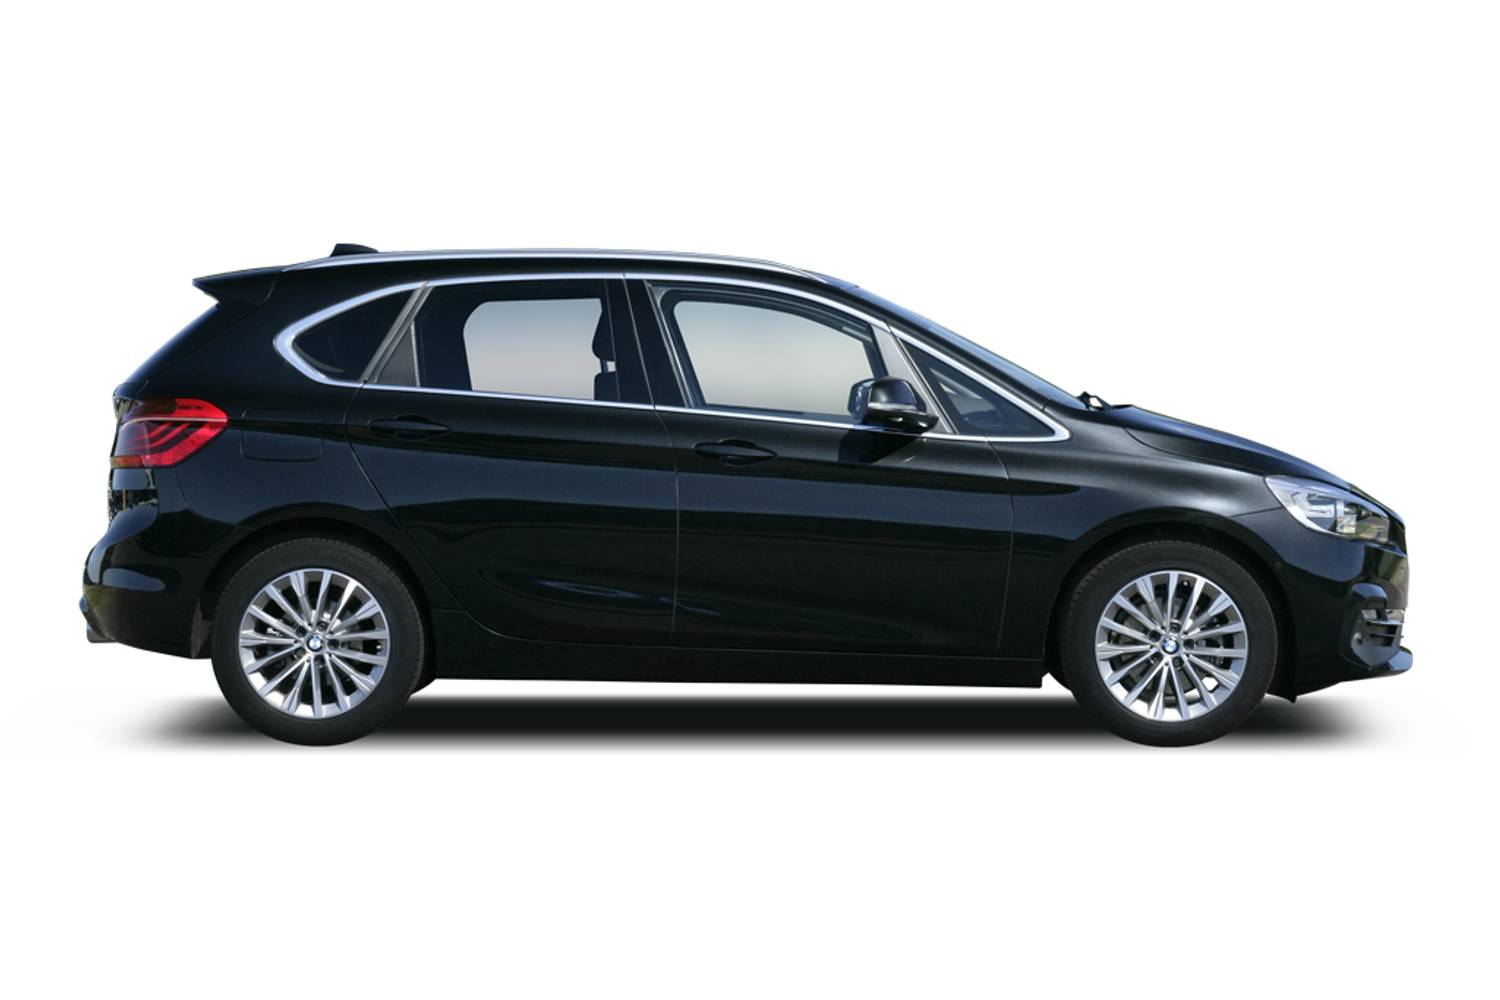 BMW 2 Series Active Tourer 5dr Profile